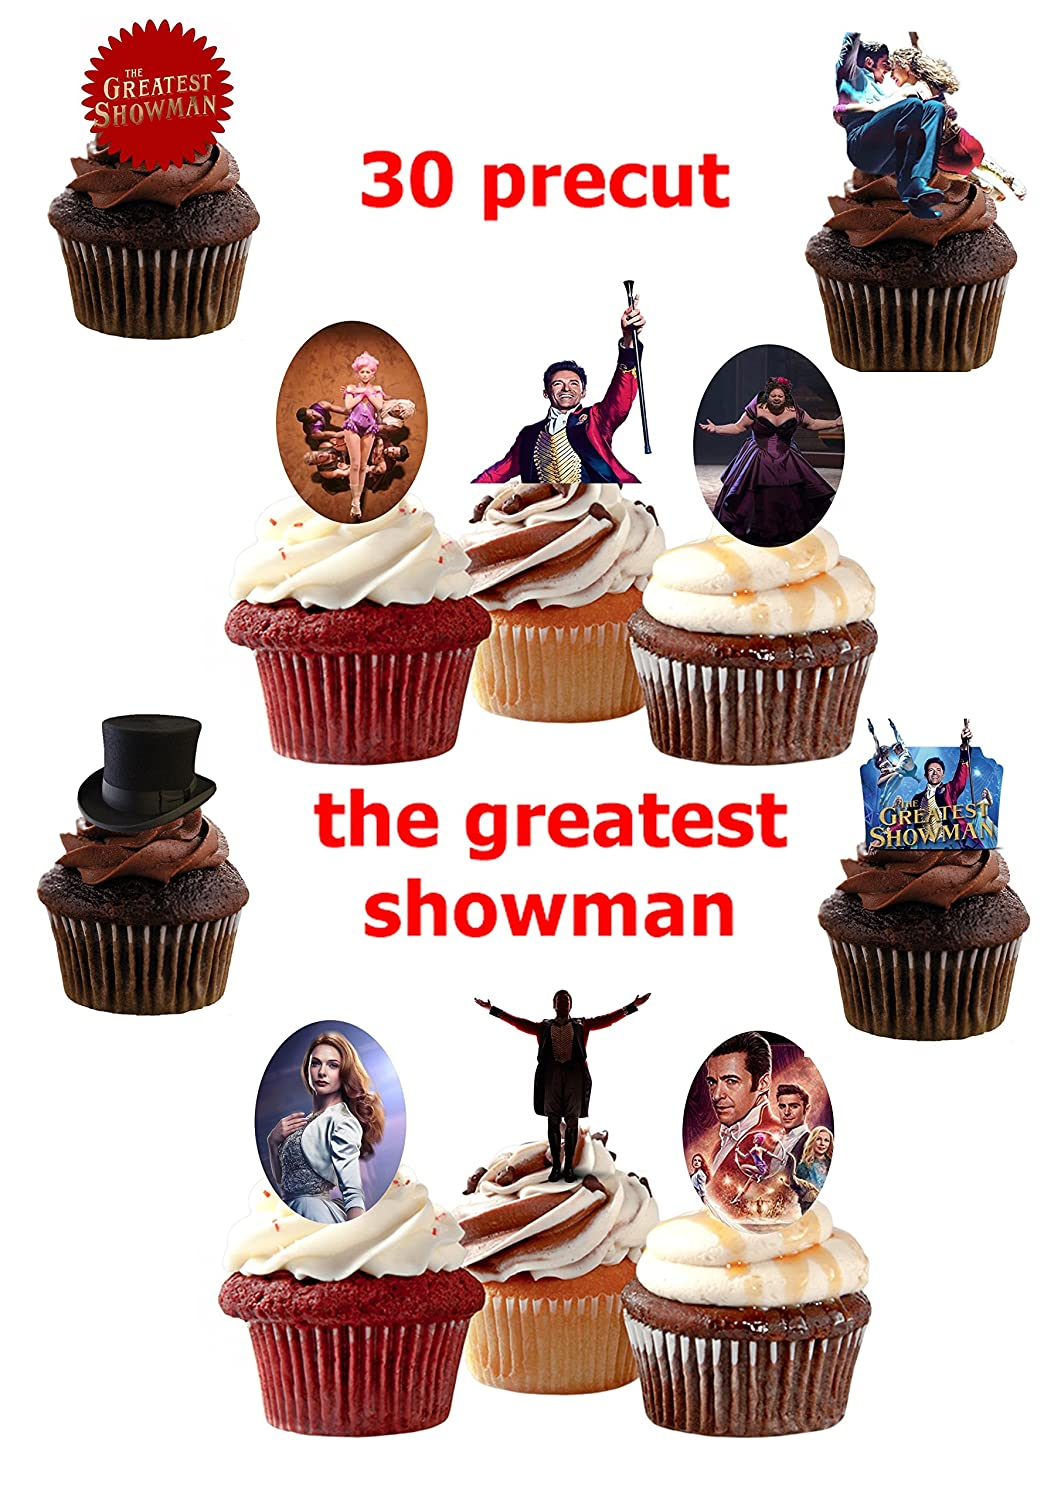 30 x The Greatest Showman Stand UP precut Edible Cupcake Topper Birthday Cake Topper channys cake toppers